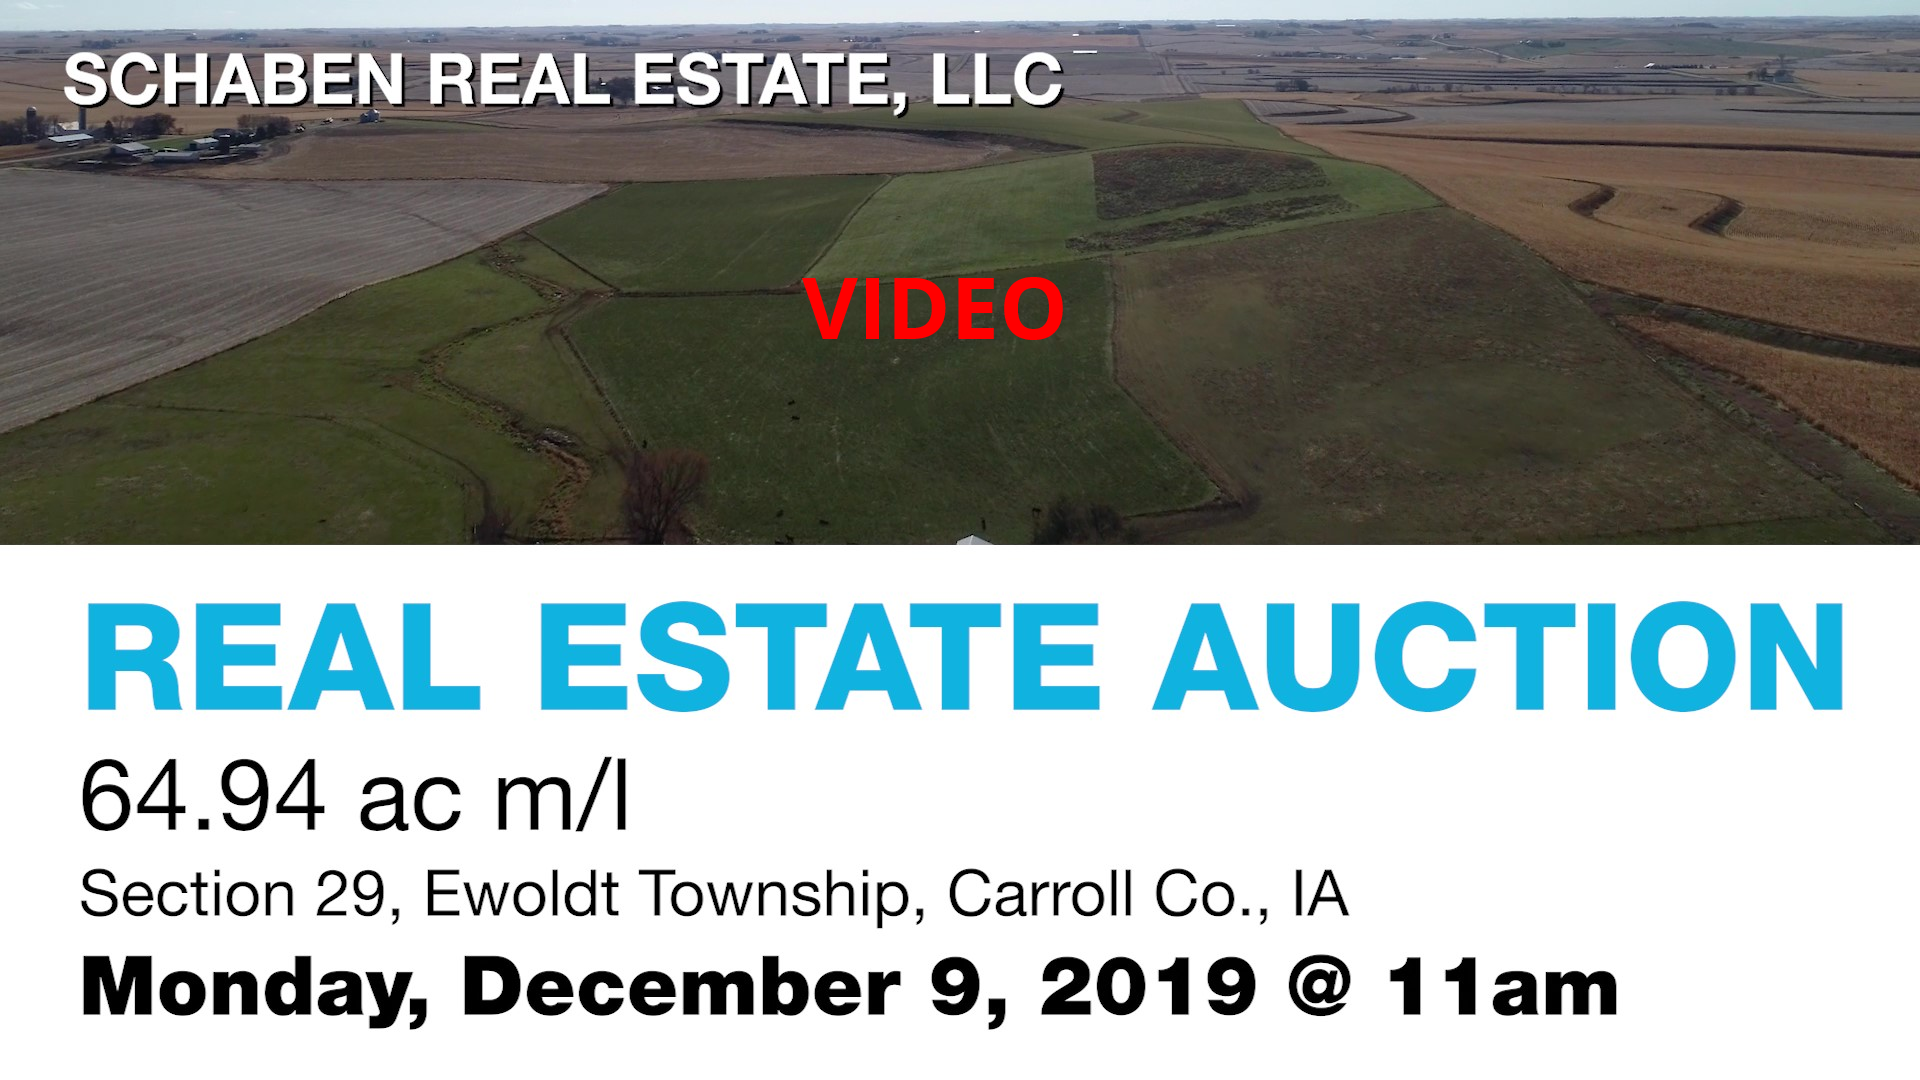 Click on picture of a video of the land to be auctioned.